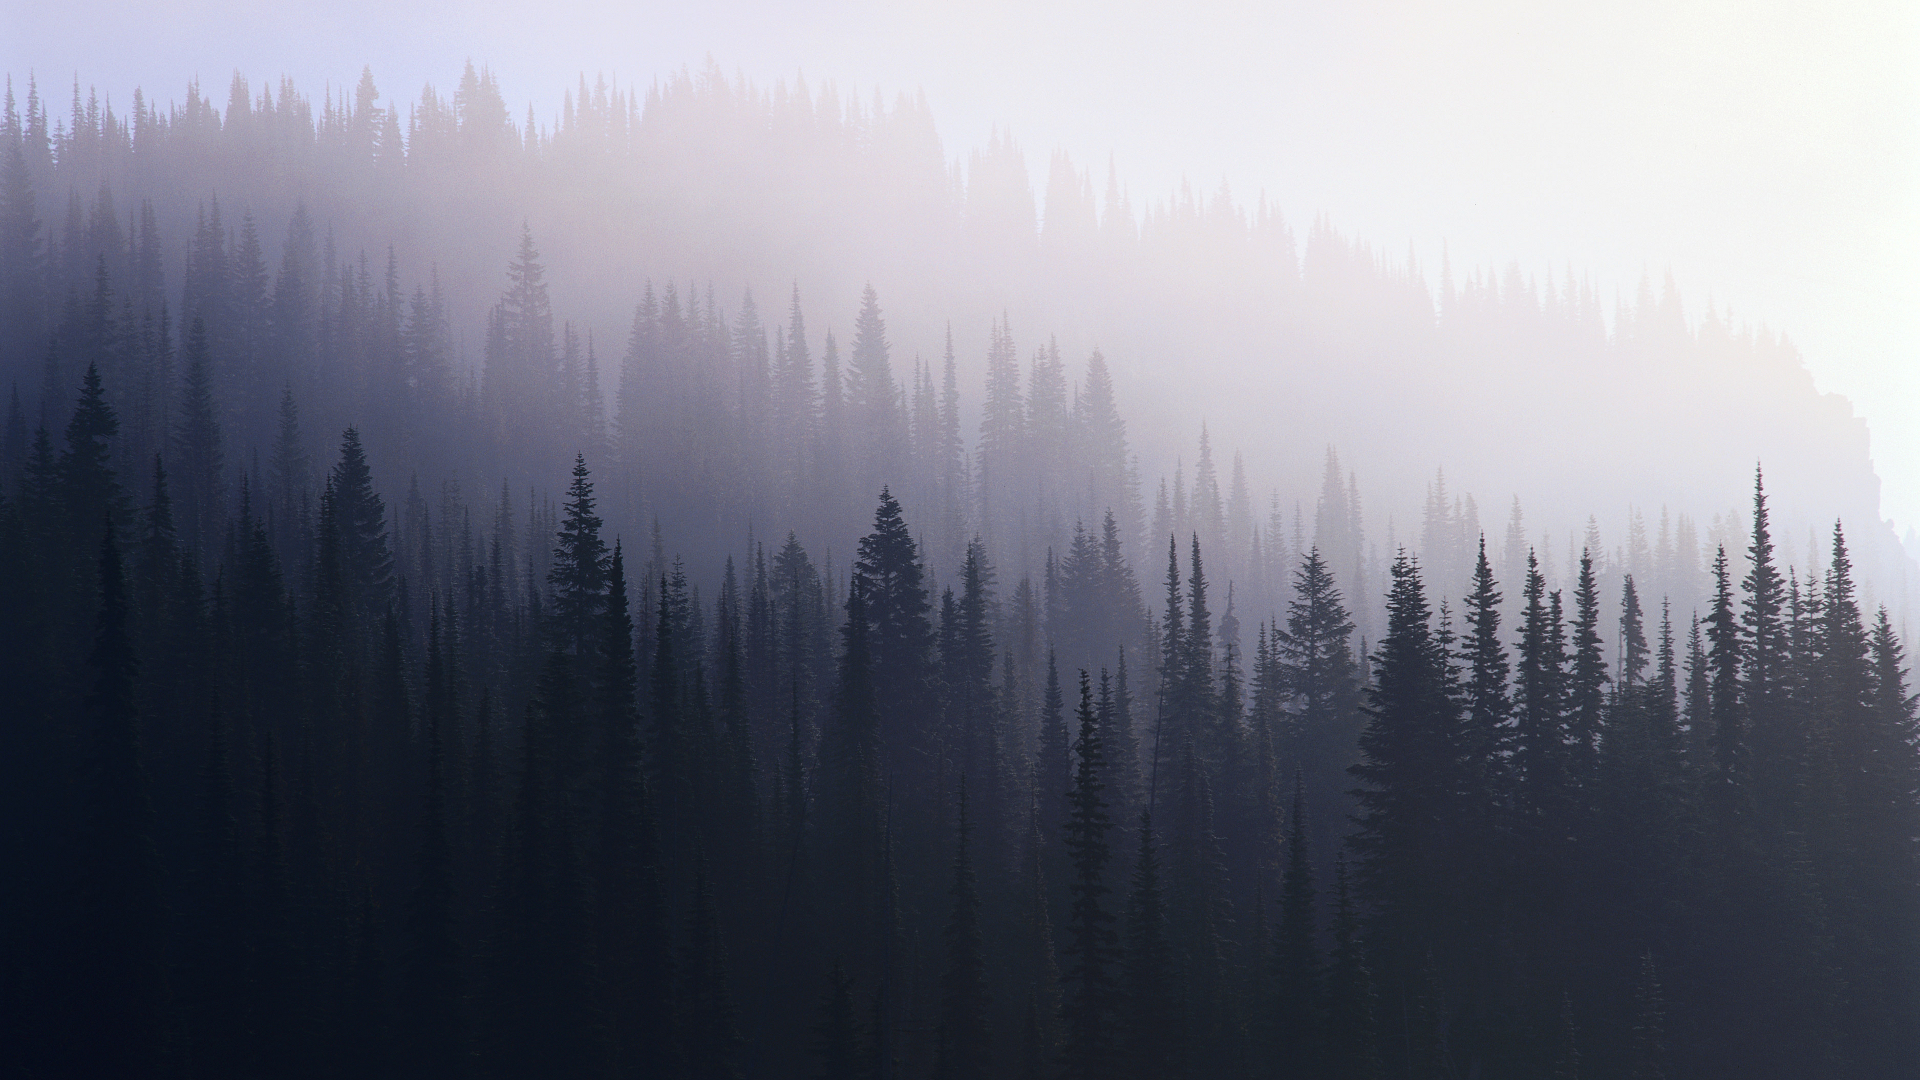 Foggy Evergreen Forest Wallpaper Landscapes trees wallpaper 1920x1080